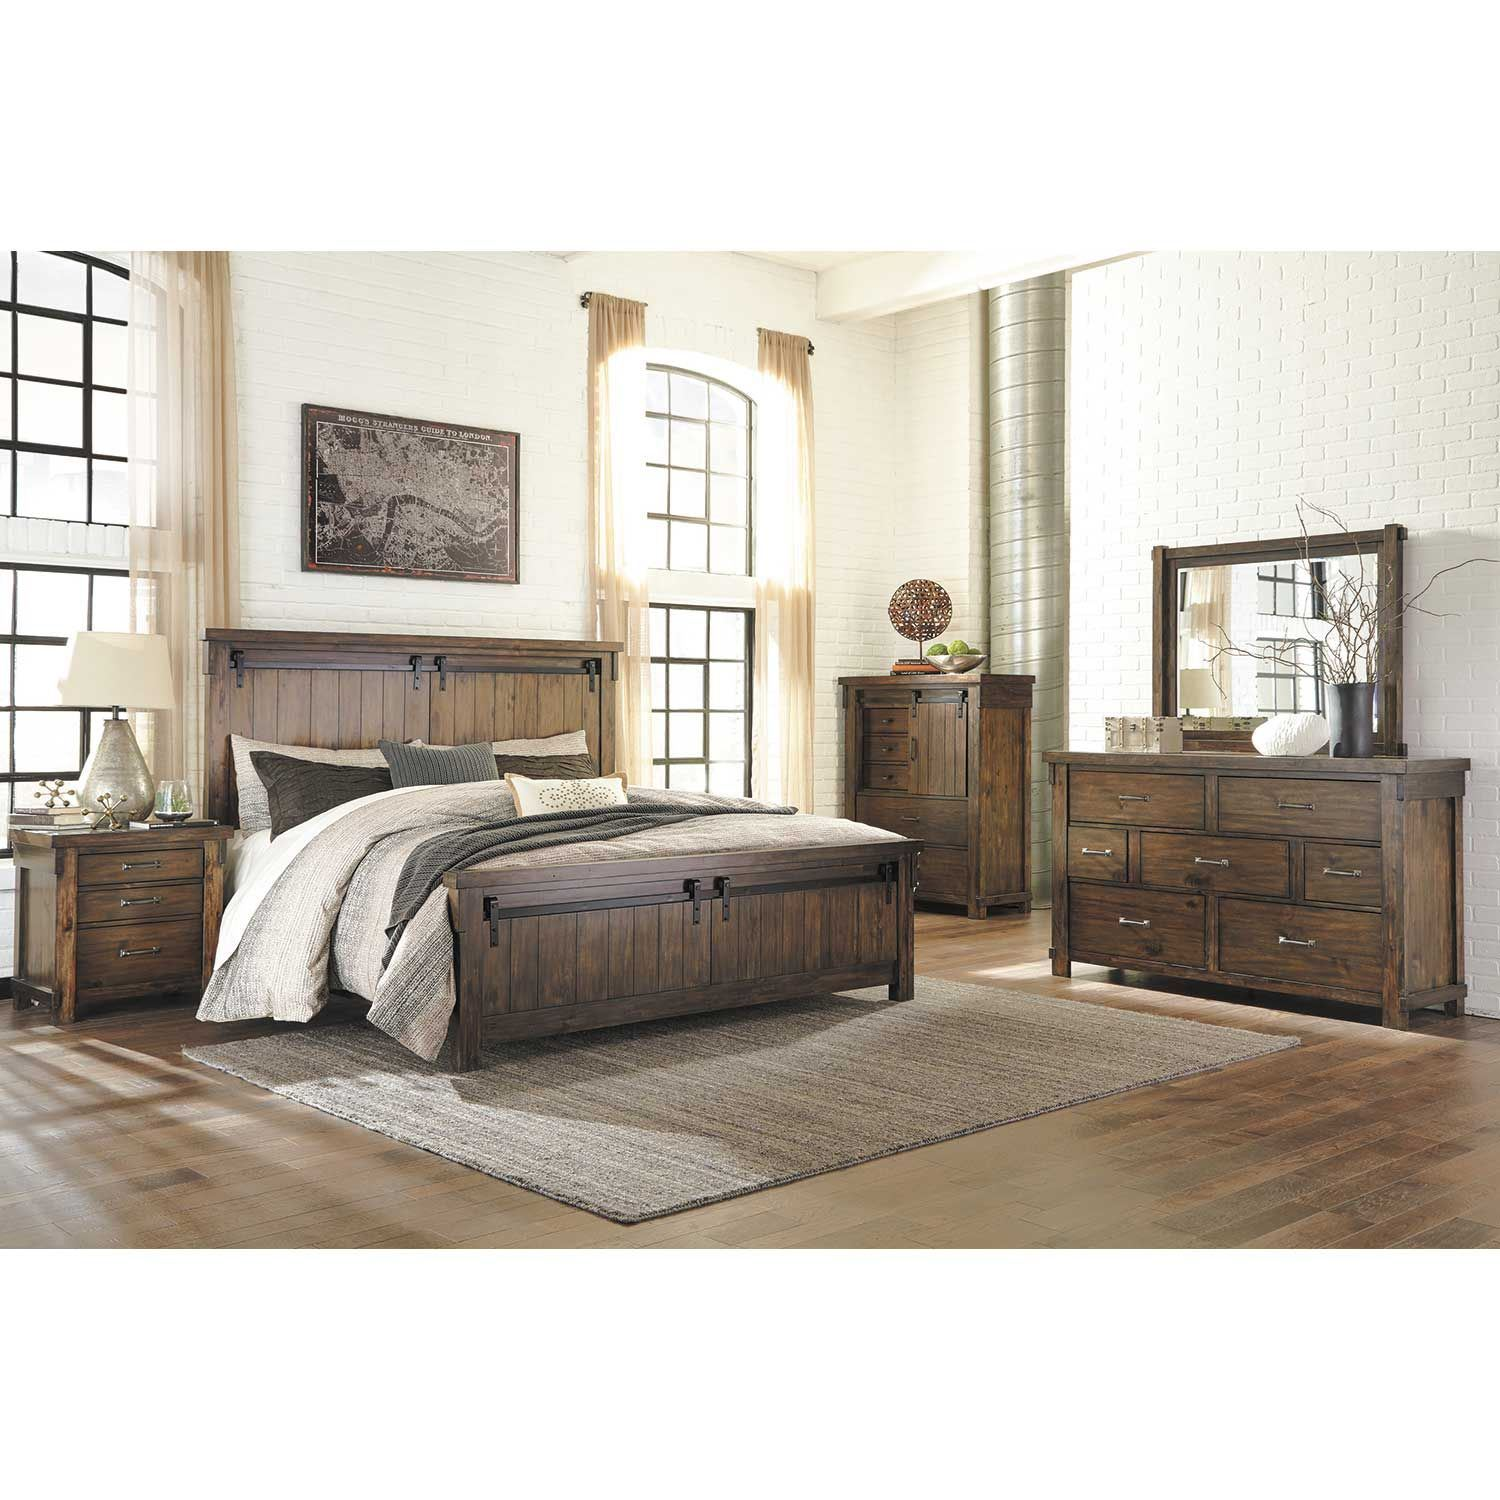 Hasley Furniture: Lakeleigh 5 Piece Bedroom Set